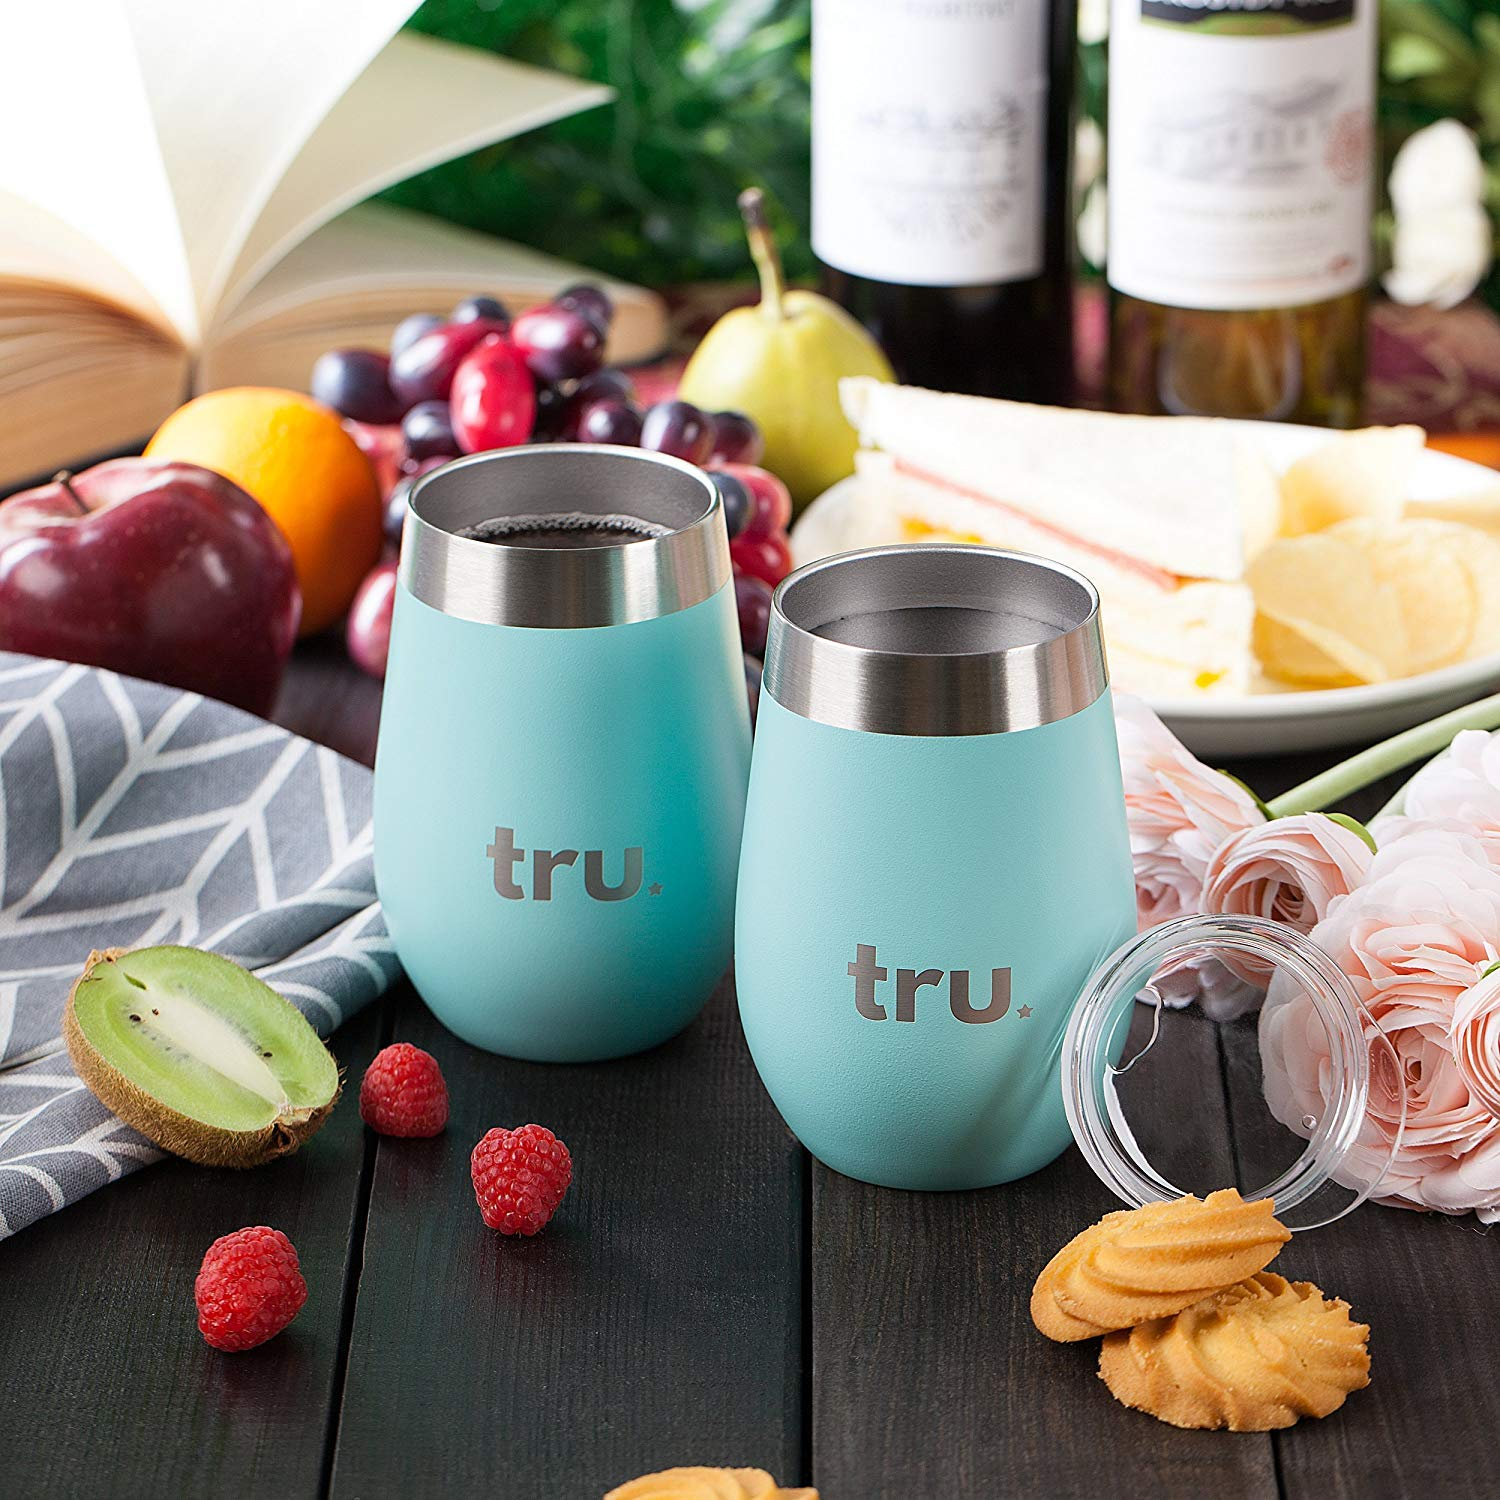 Outdoor Vacuum Insulated Wine Tumblers with Lids (Set of 2), Stainless Steel Glasses 12oz - Double Wall Stemless Metal Cup - Travel, Camping, Lightweight, Unbreakable, Portable, BPA Free by Tru Blu Steel (Image #6)